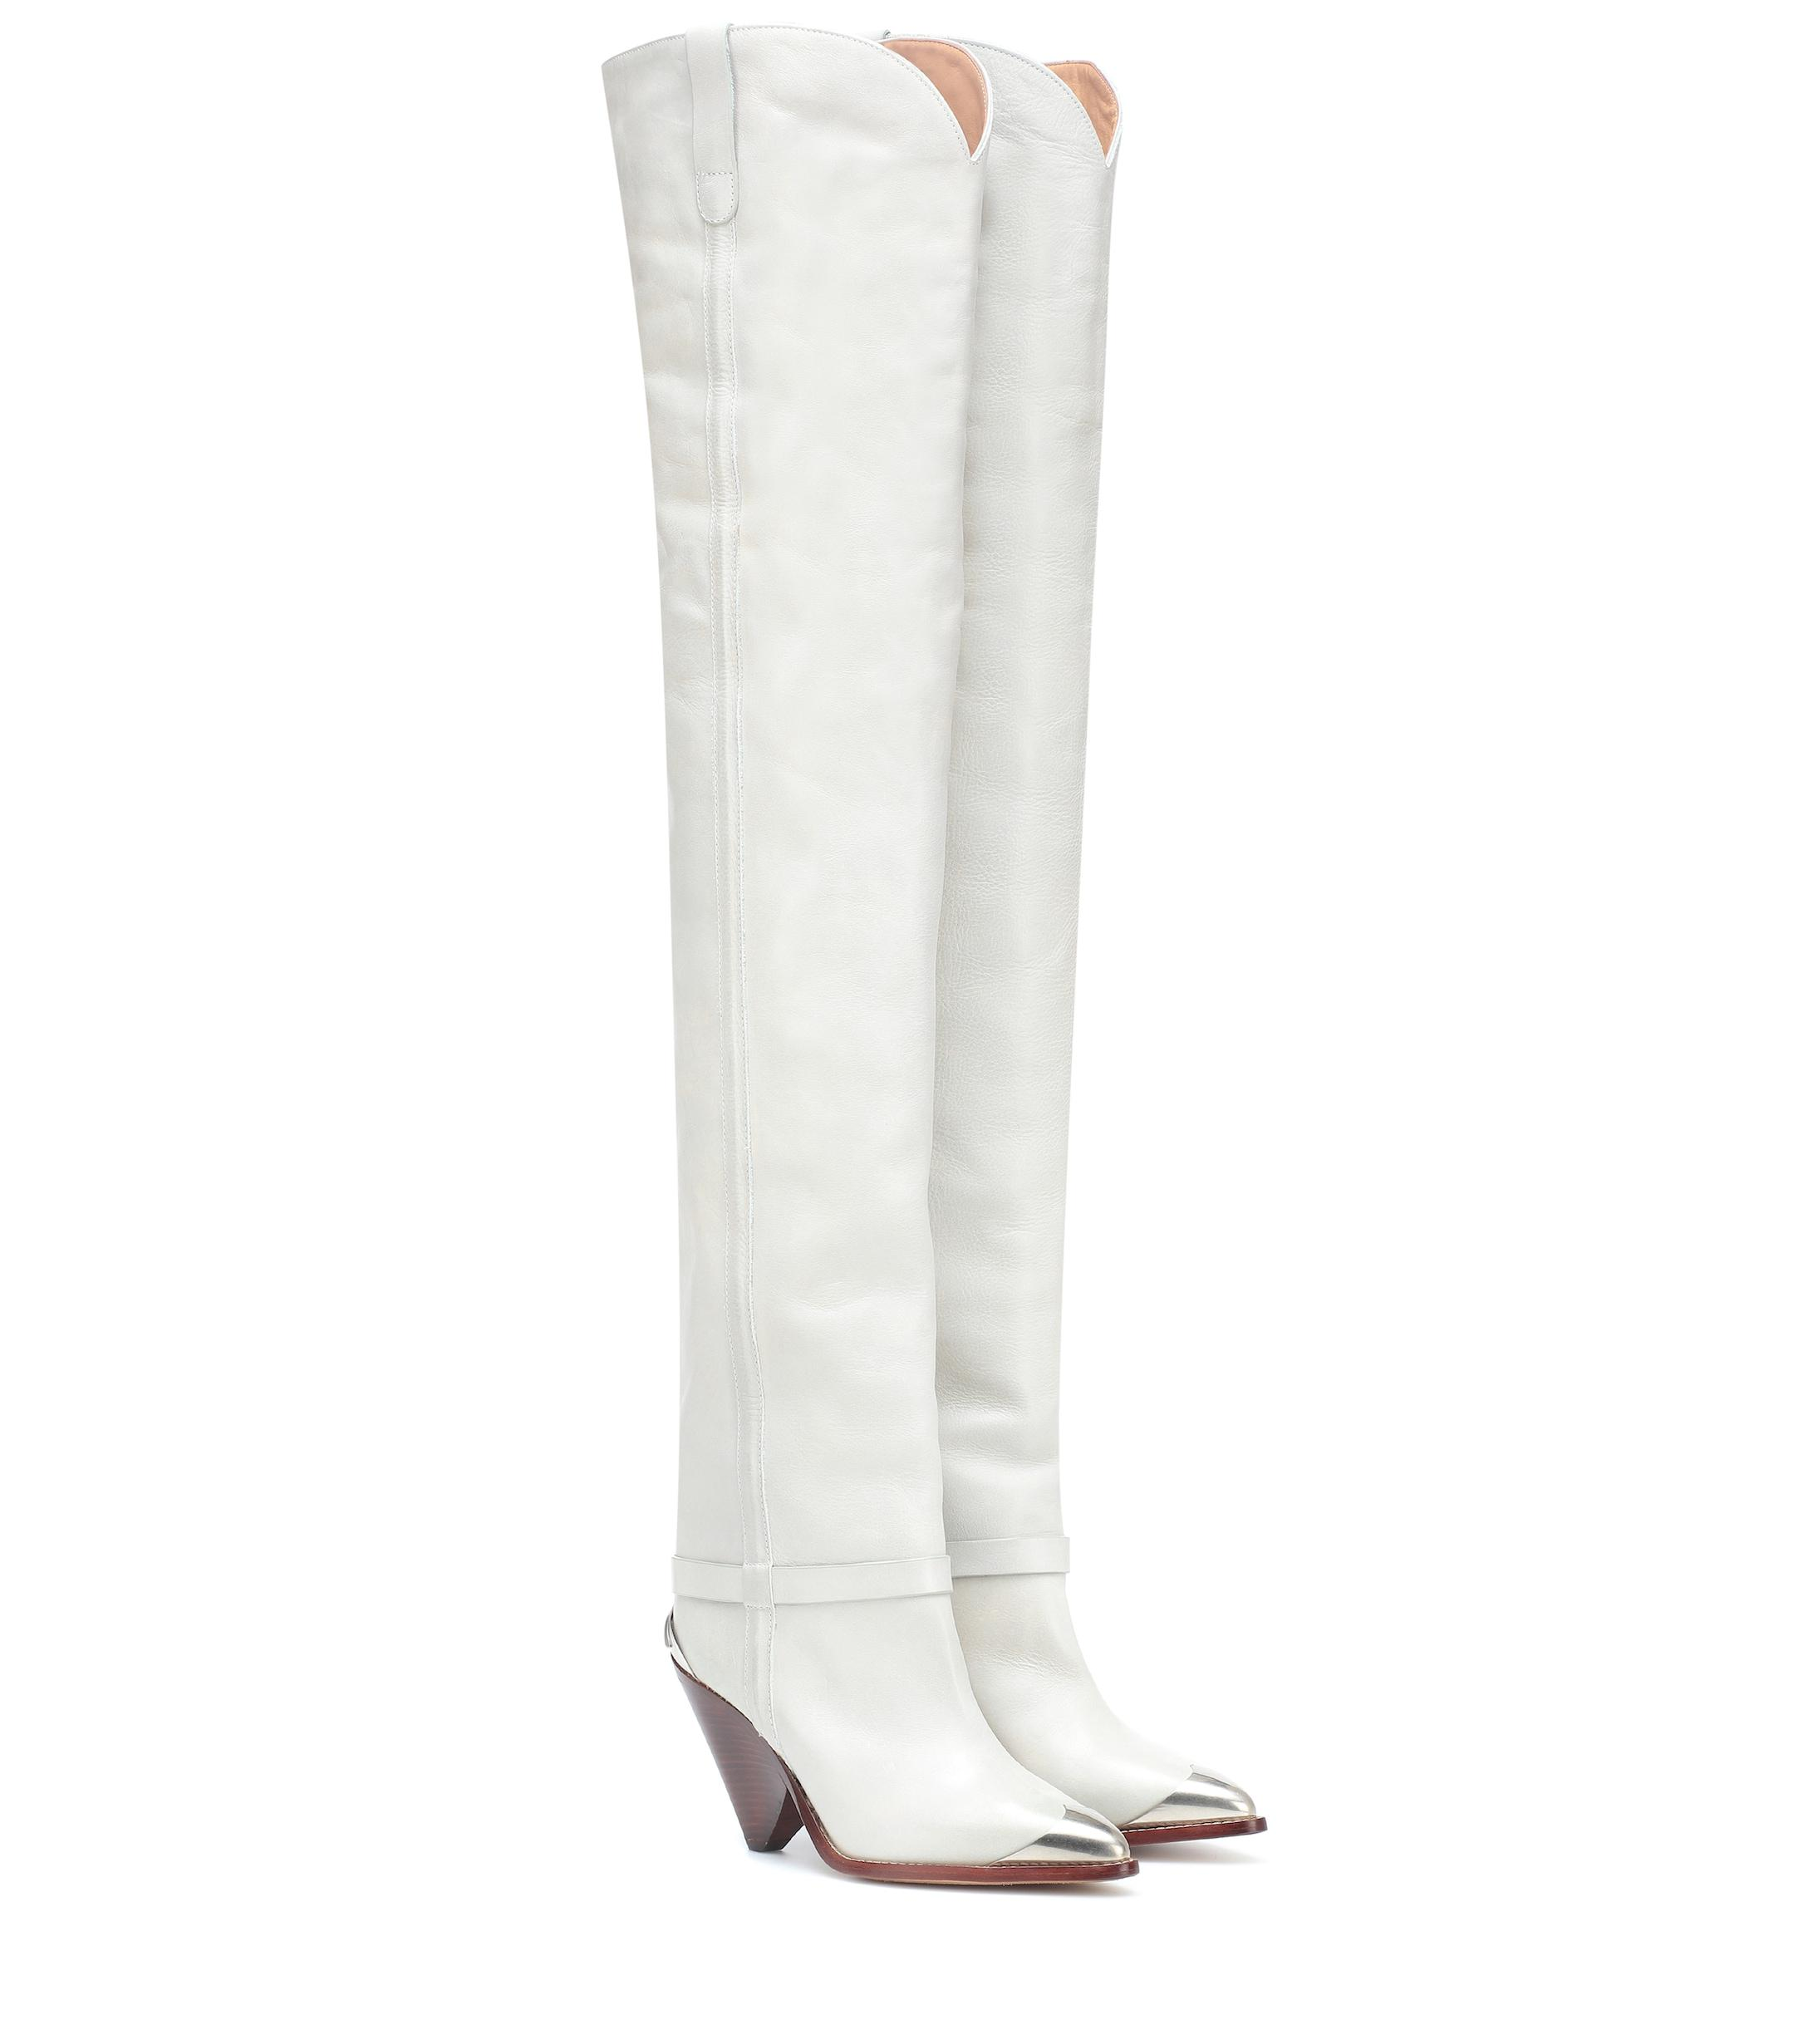 6597773a1e2 Lyst - Isabel Marant Lafsten Over-the-knee Boots in White